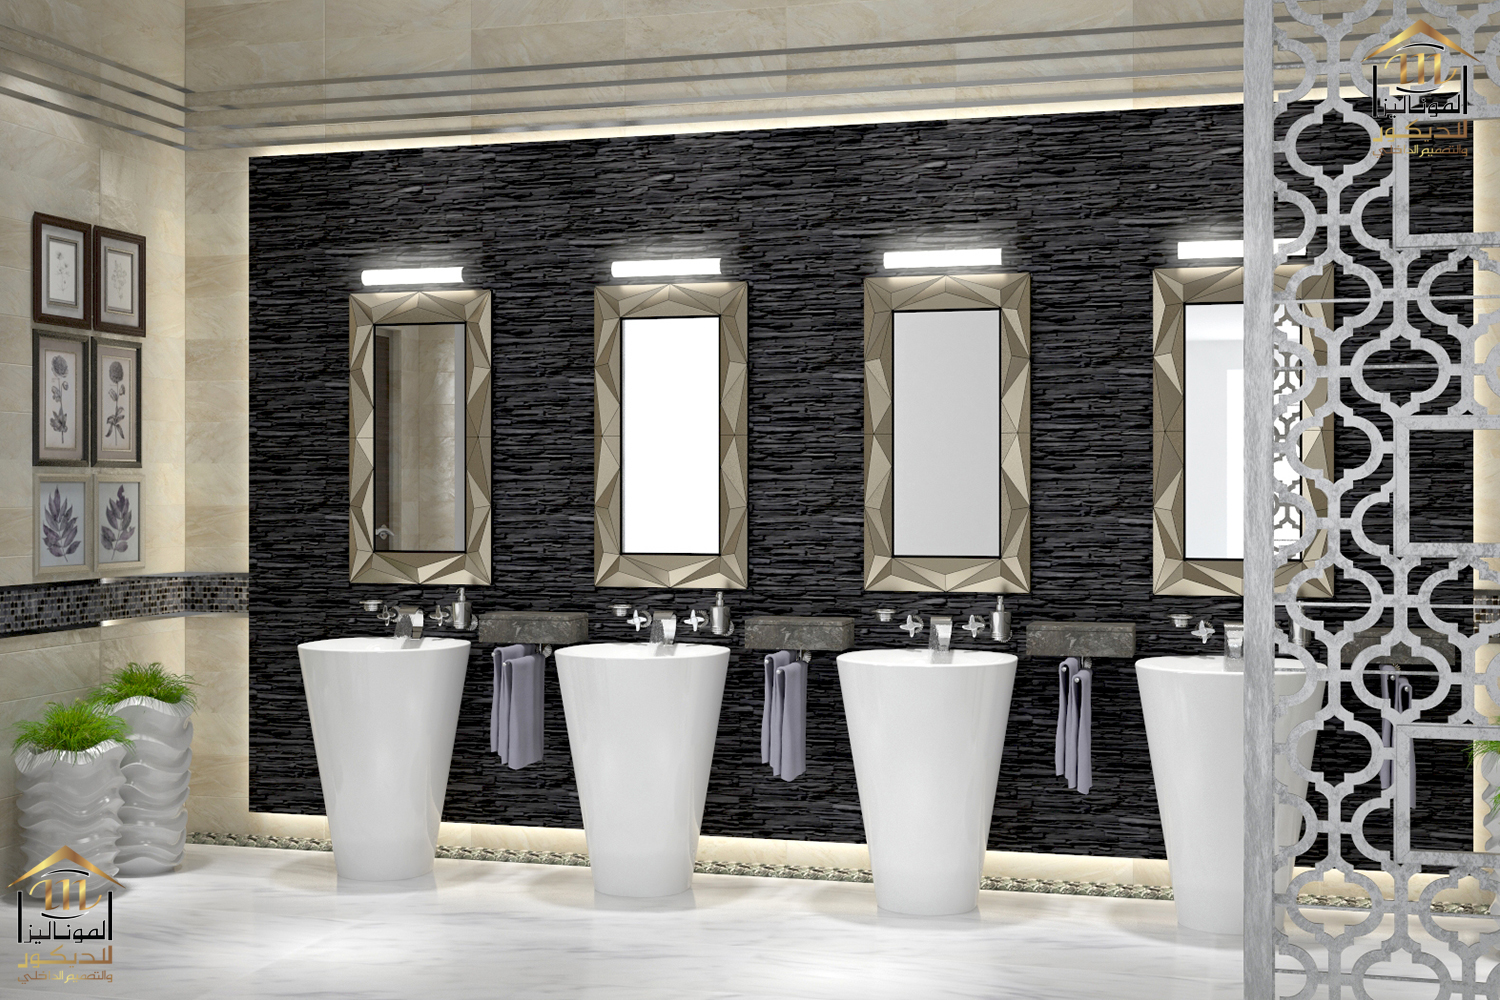 almonaliza group_decoration&interior design_bathrooms (20).jpg